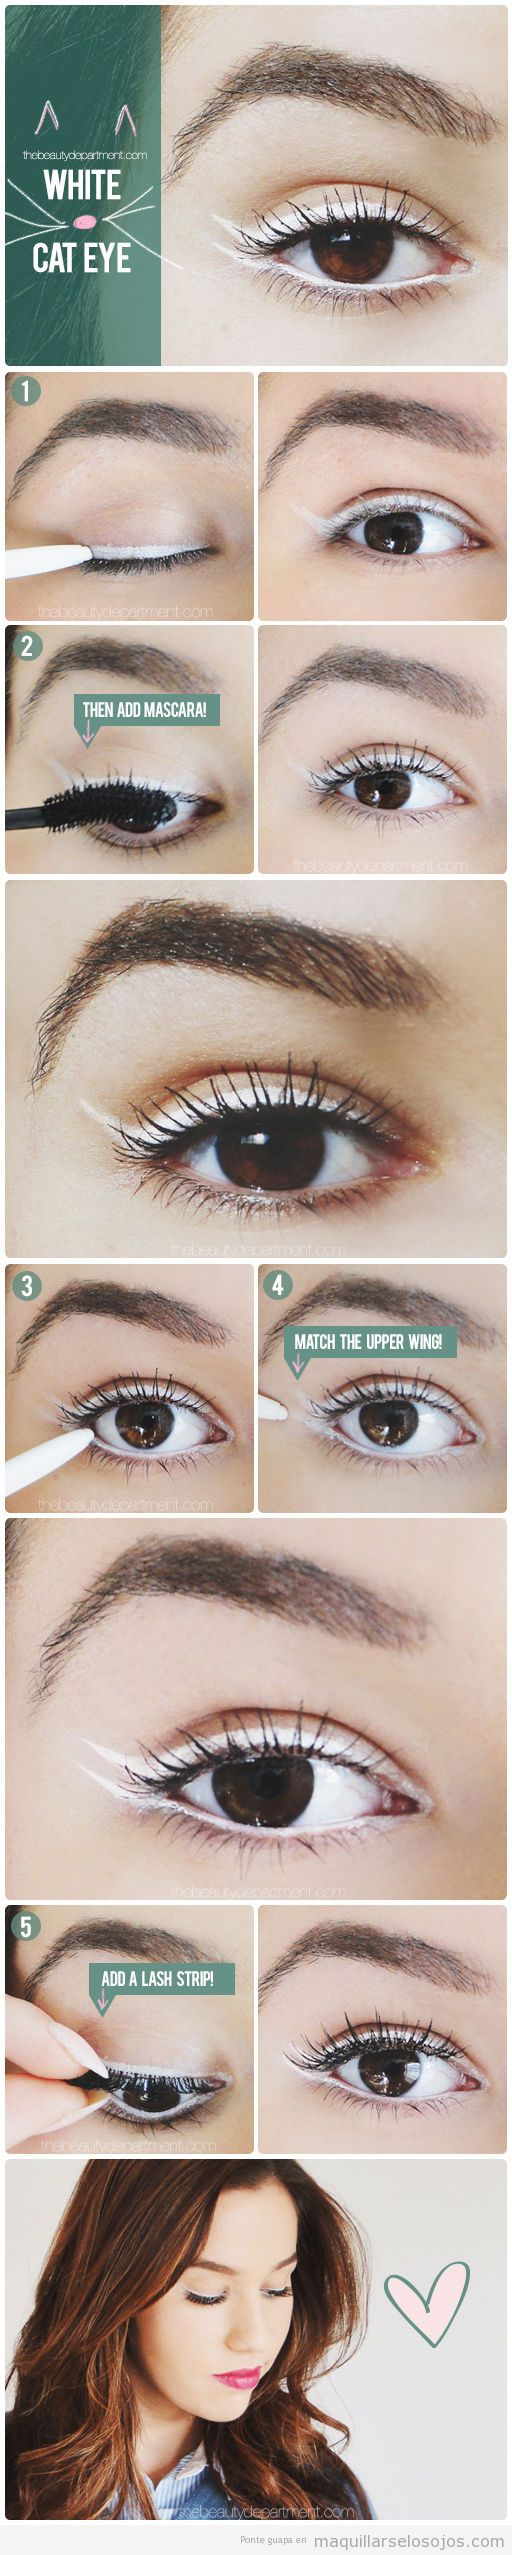 Tutorial maquillaje ojos, cat eye color blanco